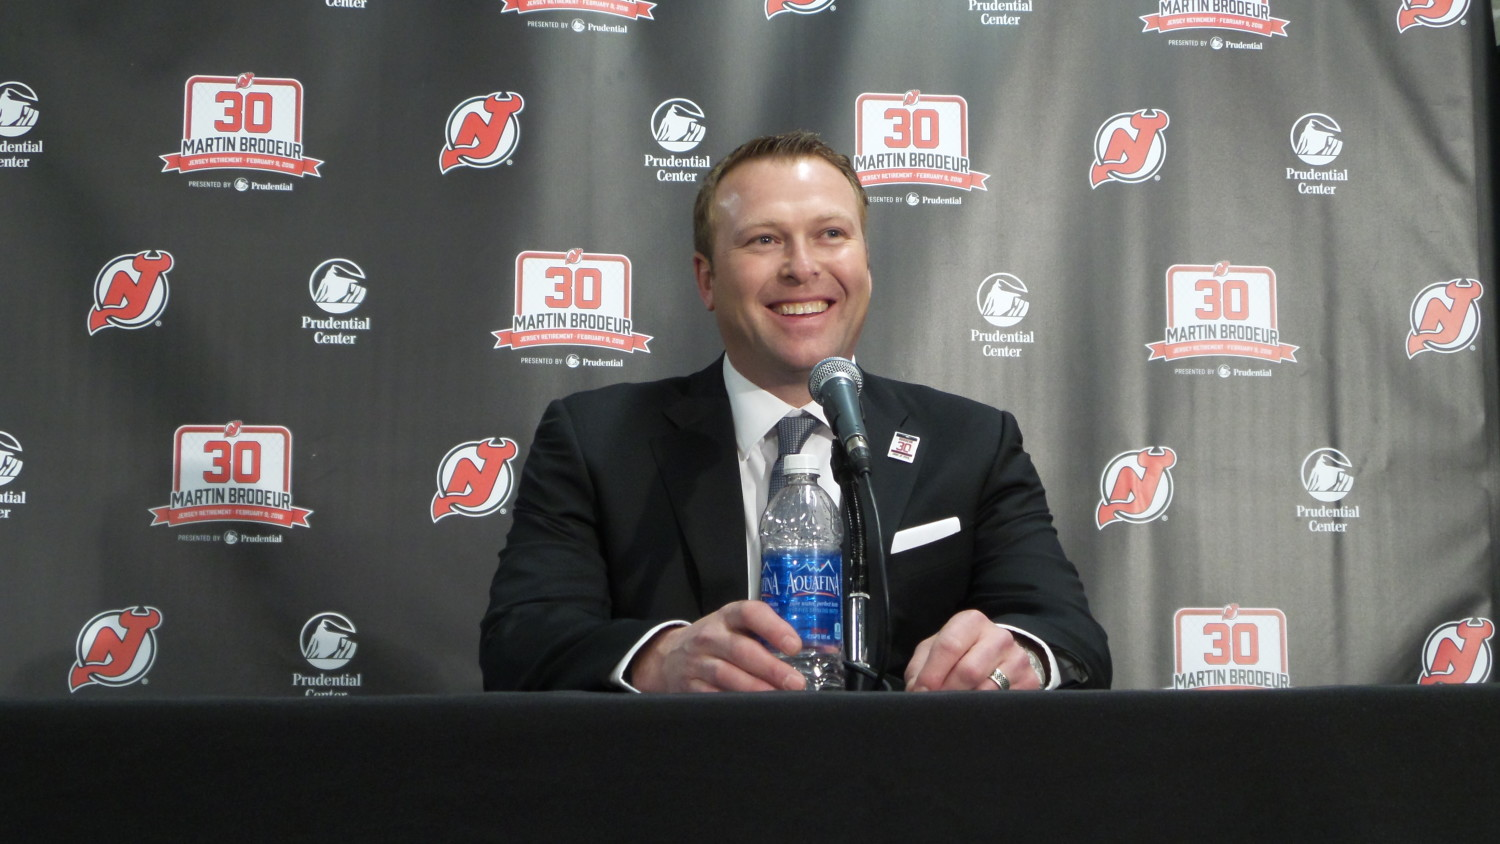 The New Jersey Devils honored Martin Brodeur on February 9, 2016 by lifting his #30 to the rafters. (Photo by Michelle Kenneth)